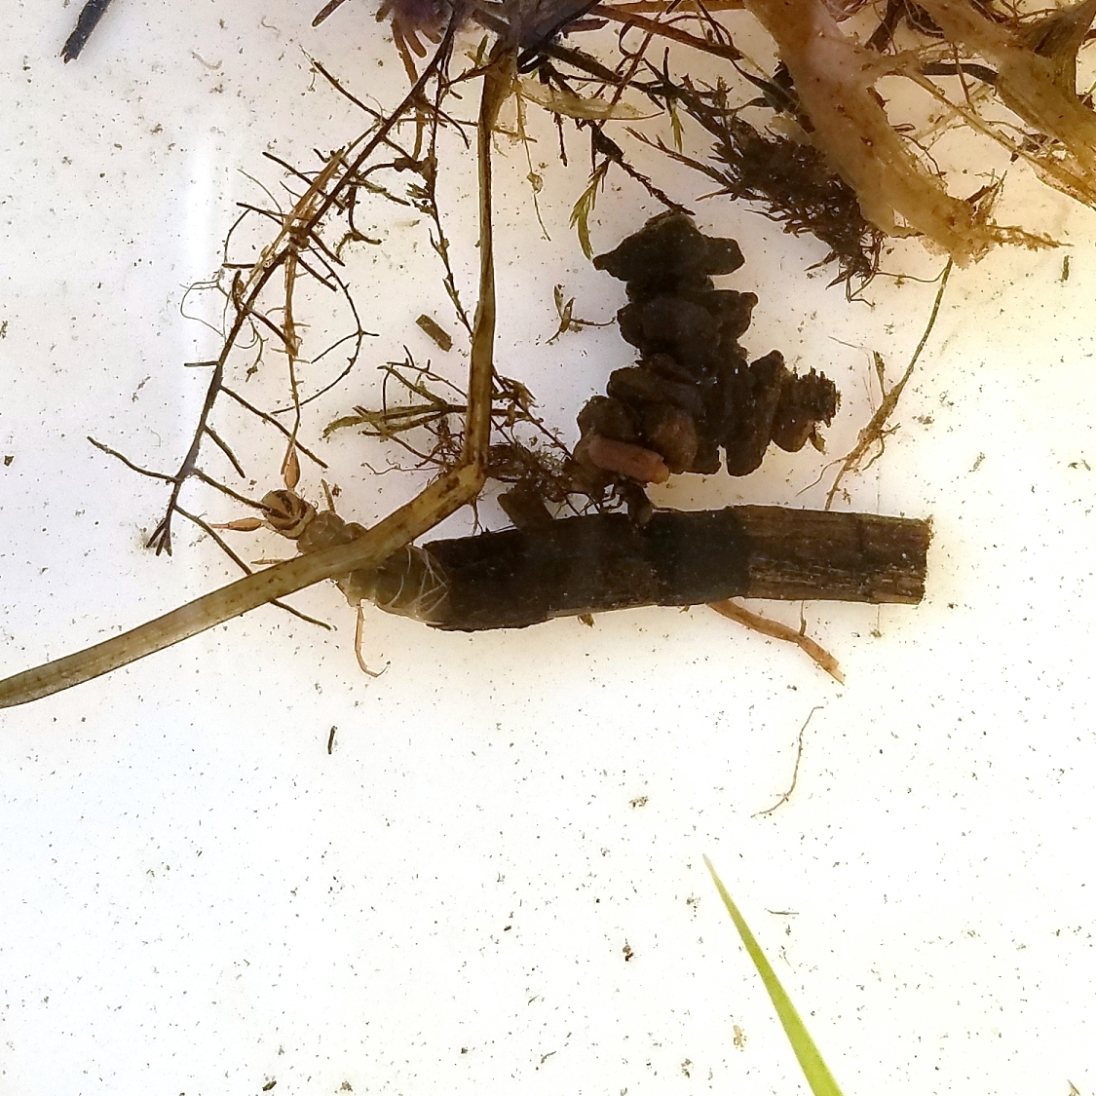 Caddisfly larvae (Ptilostomis in the tubular case) and a smaller unidentified species.